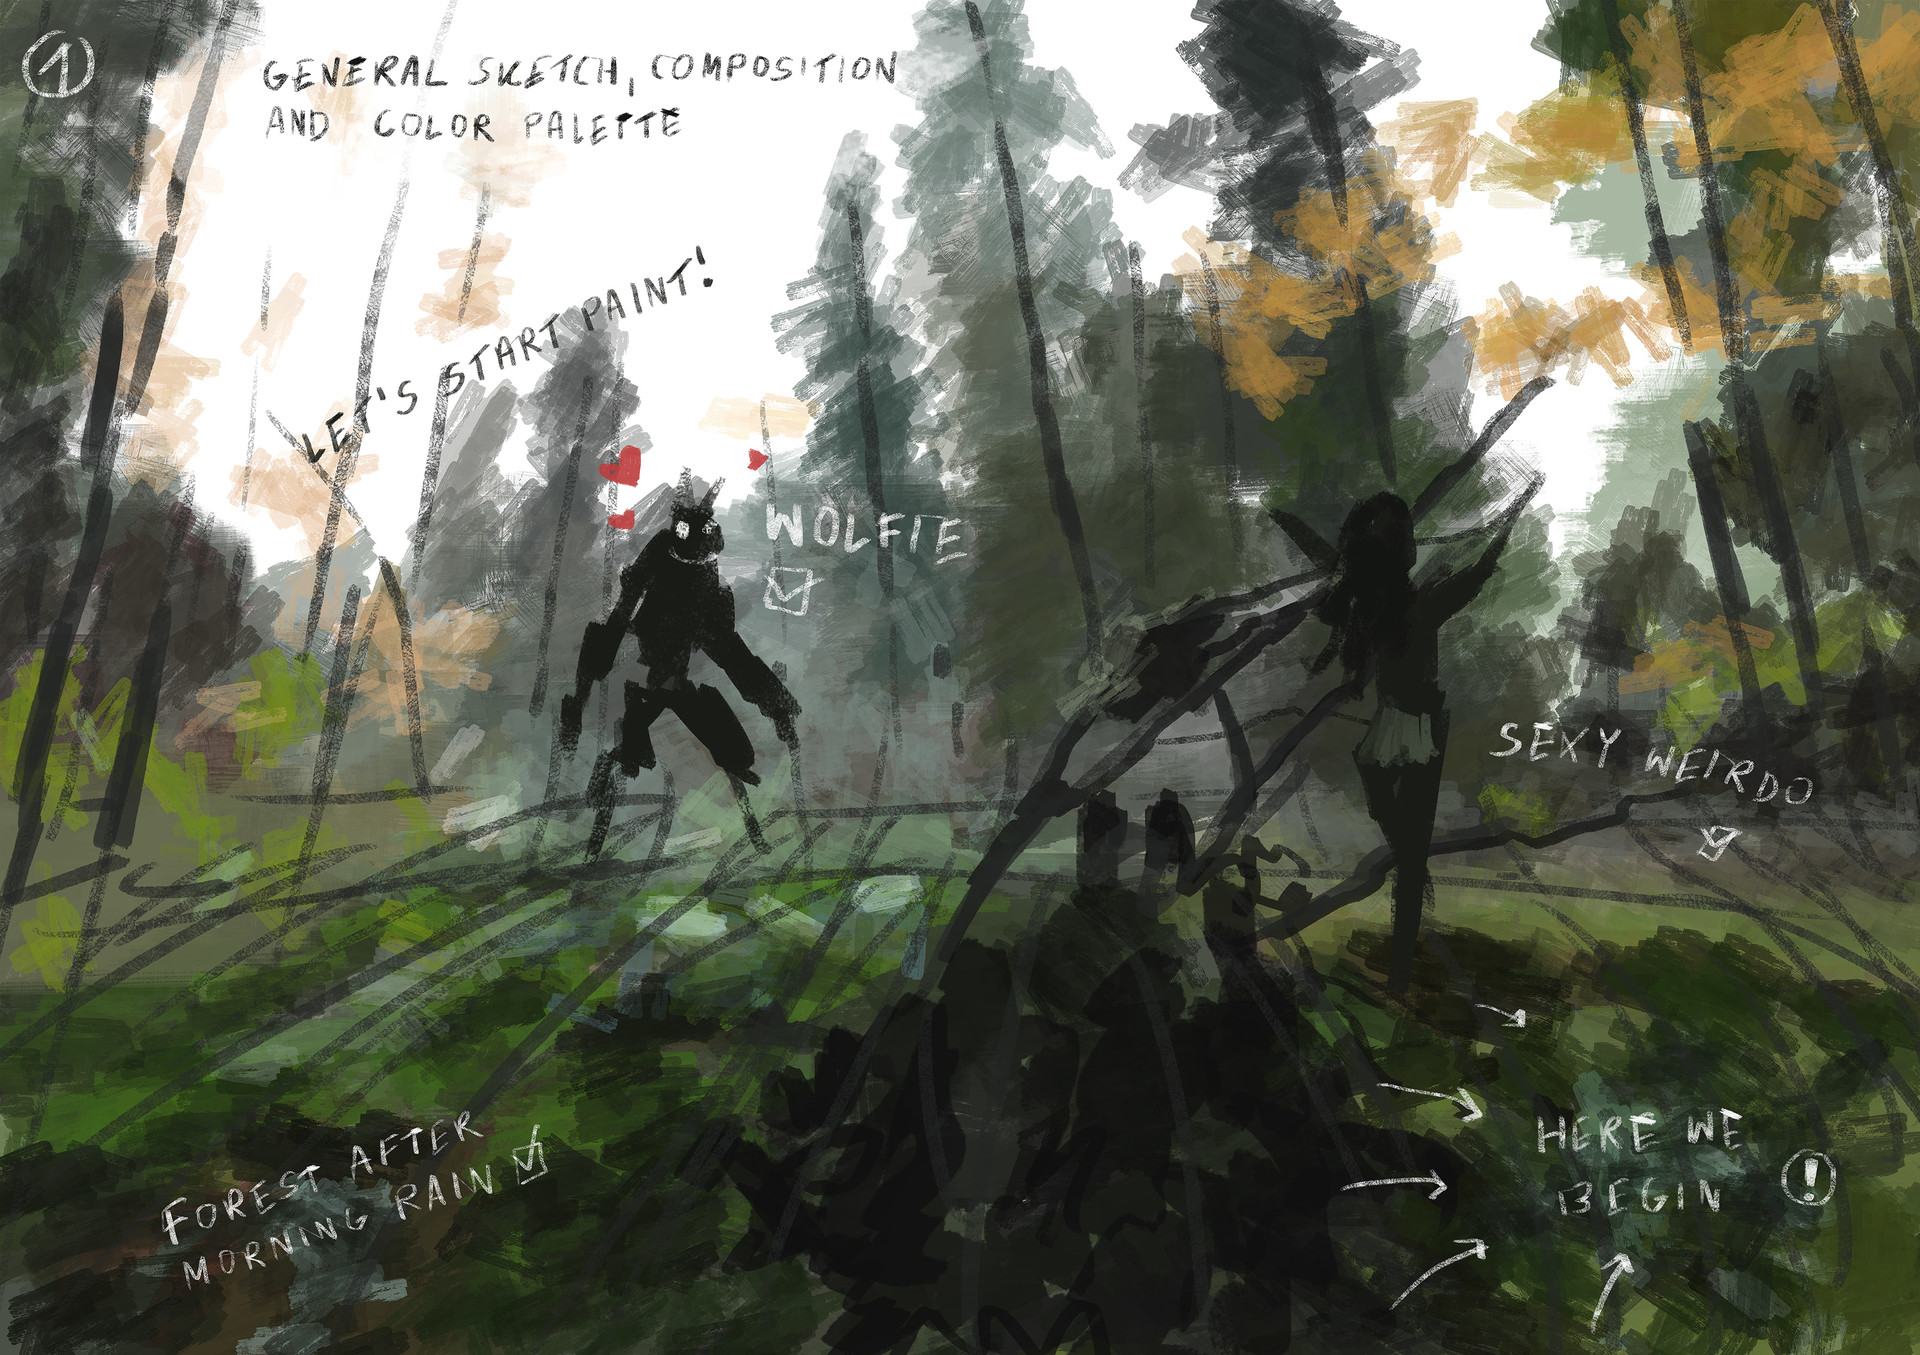 Jakub rozalski morning hunt process01